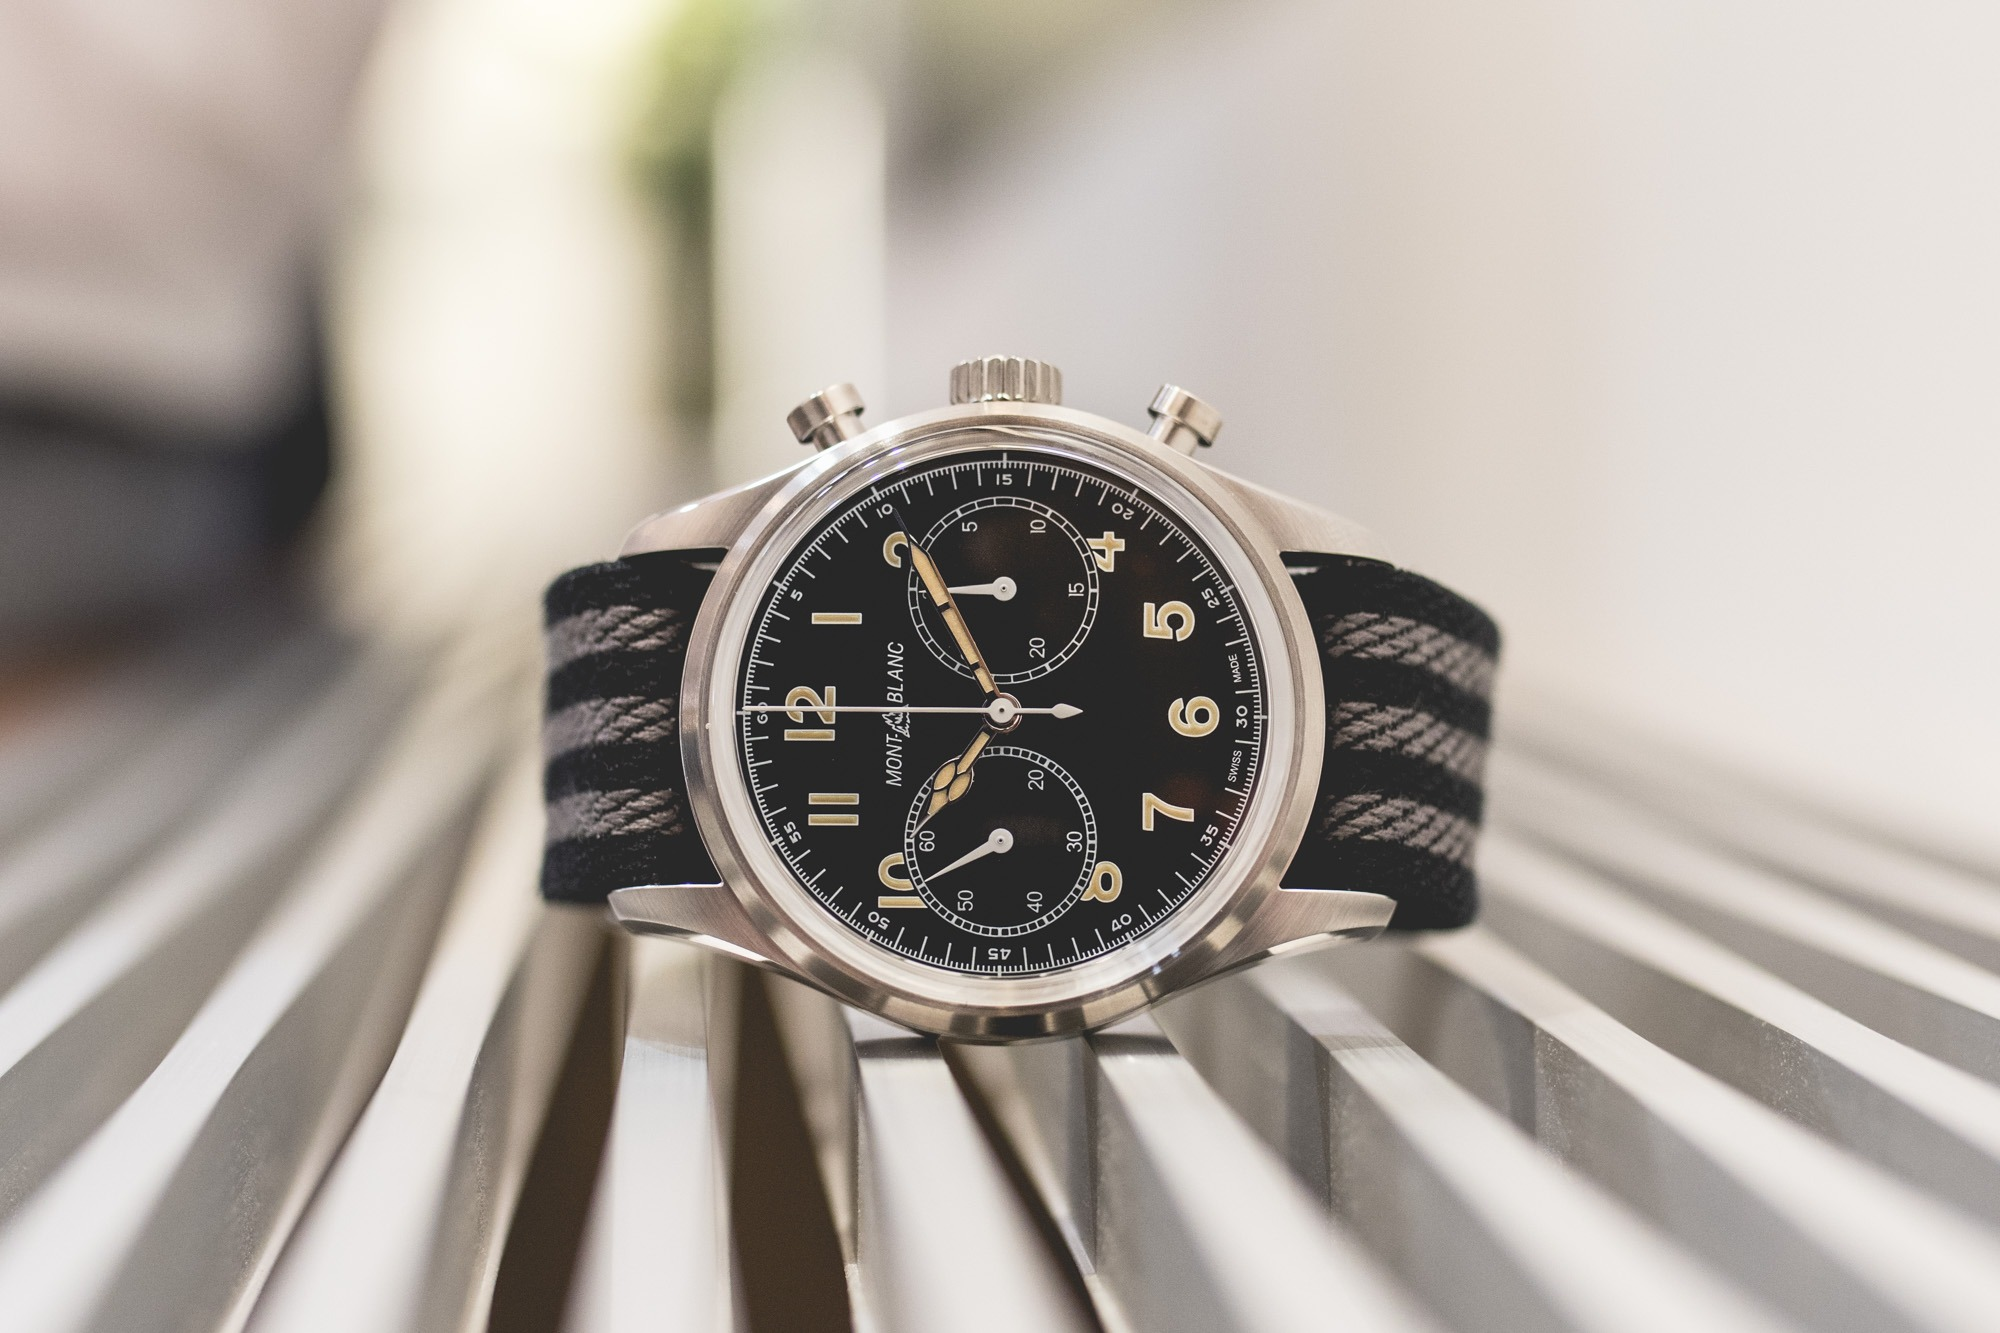 Montblanc SIHH 2018 - 1858 Automatic Chronograph